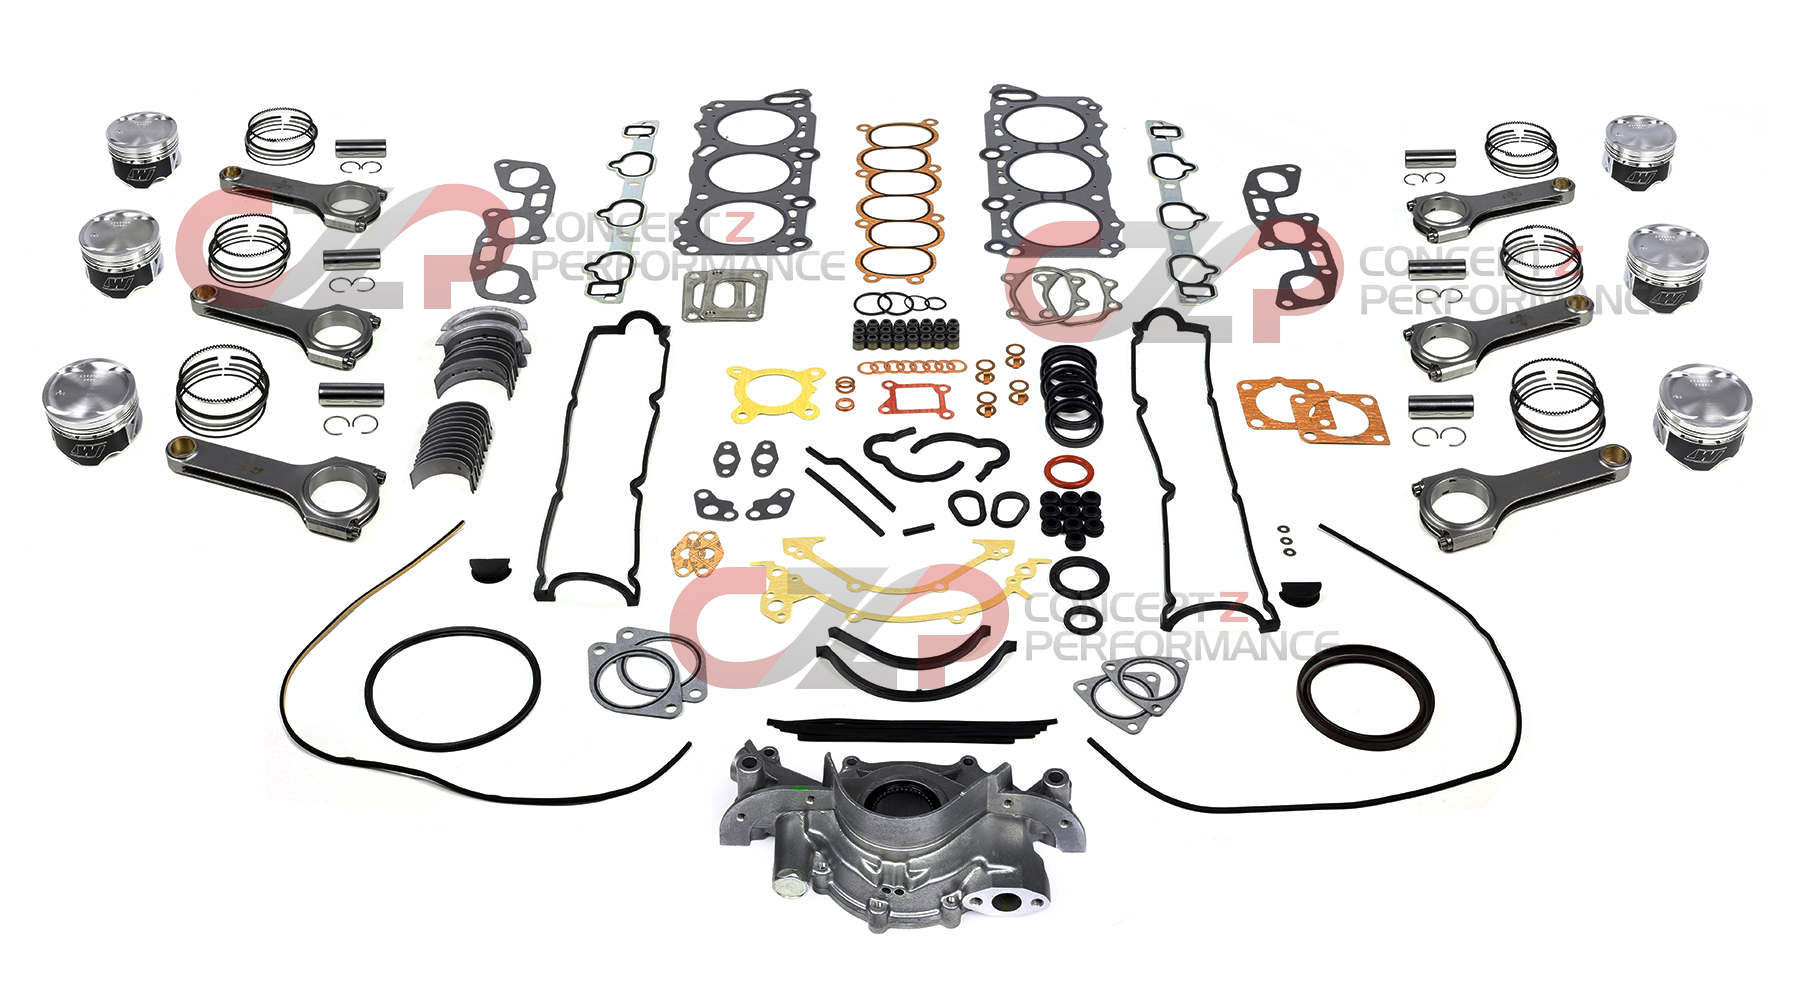 Czp wiseco piston eagle connecting rod engine rebuild kit wiseco piston eagle connecting rod engine rebuild kit package a twin turbo tt nissan 300zx 90 96 z32 vanachro Images